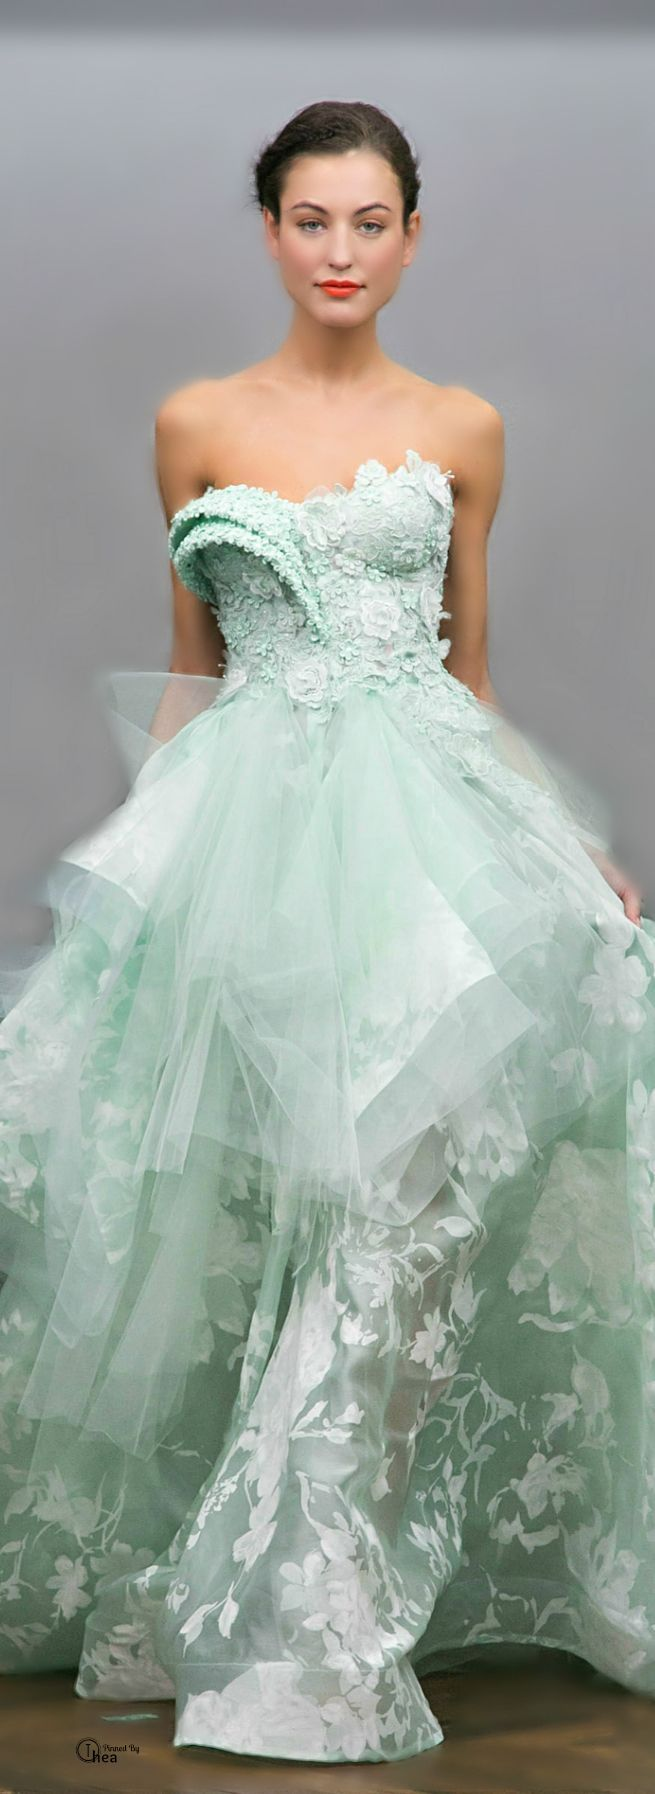 41 best Style Target images on Pinterest | Bridal gowns, Formal ...